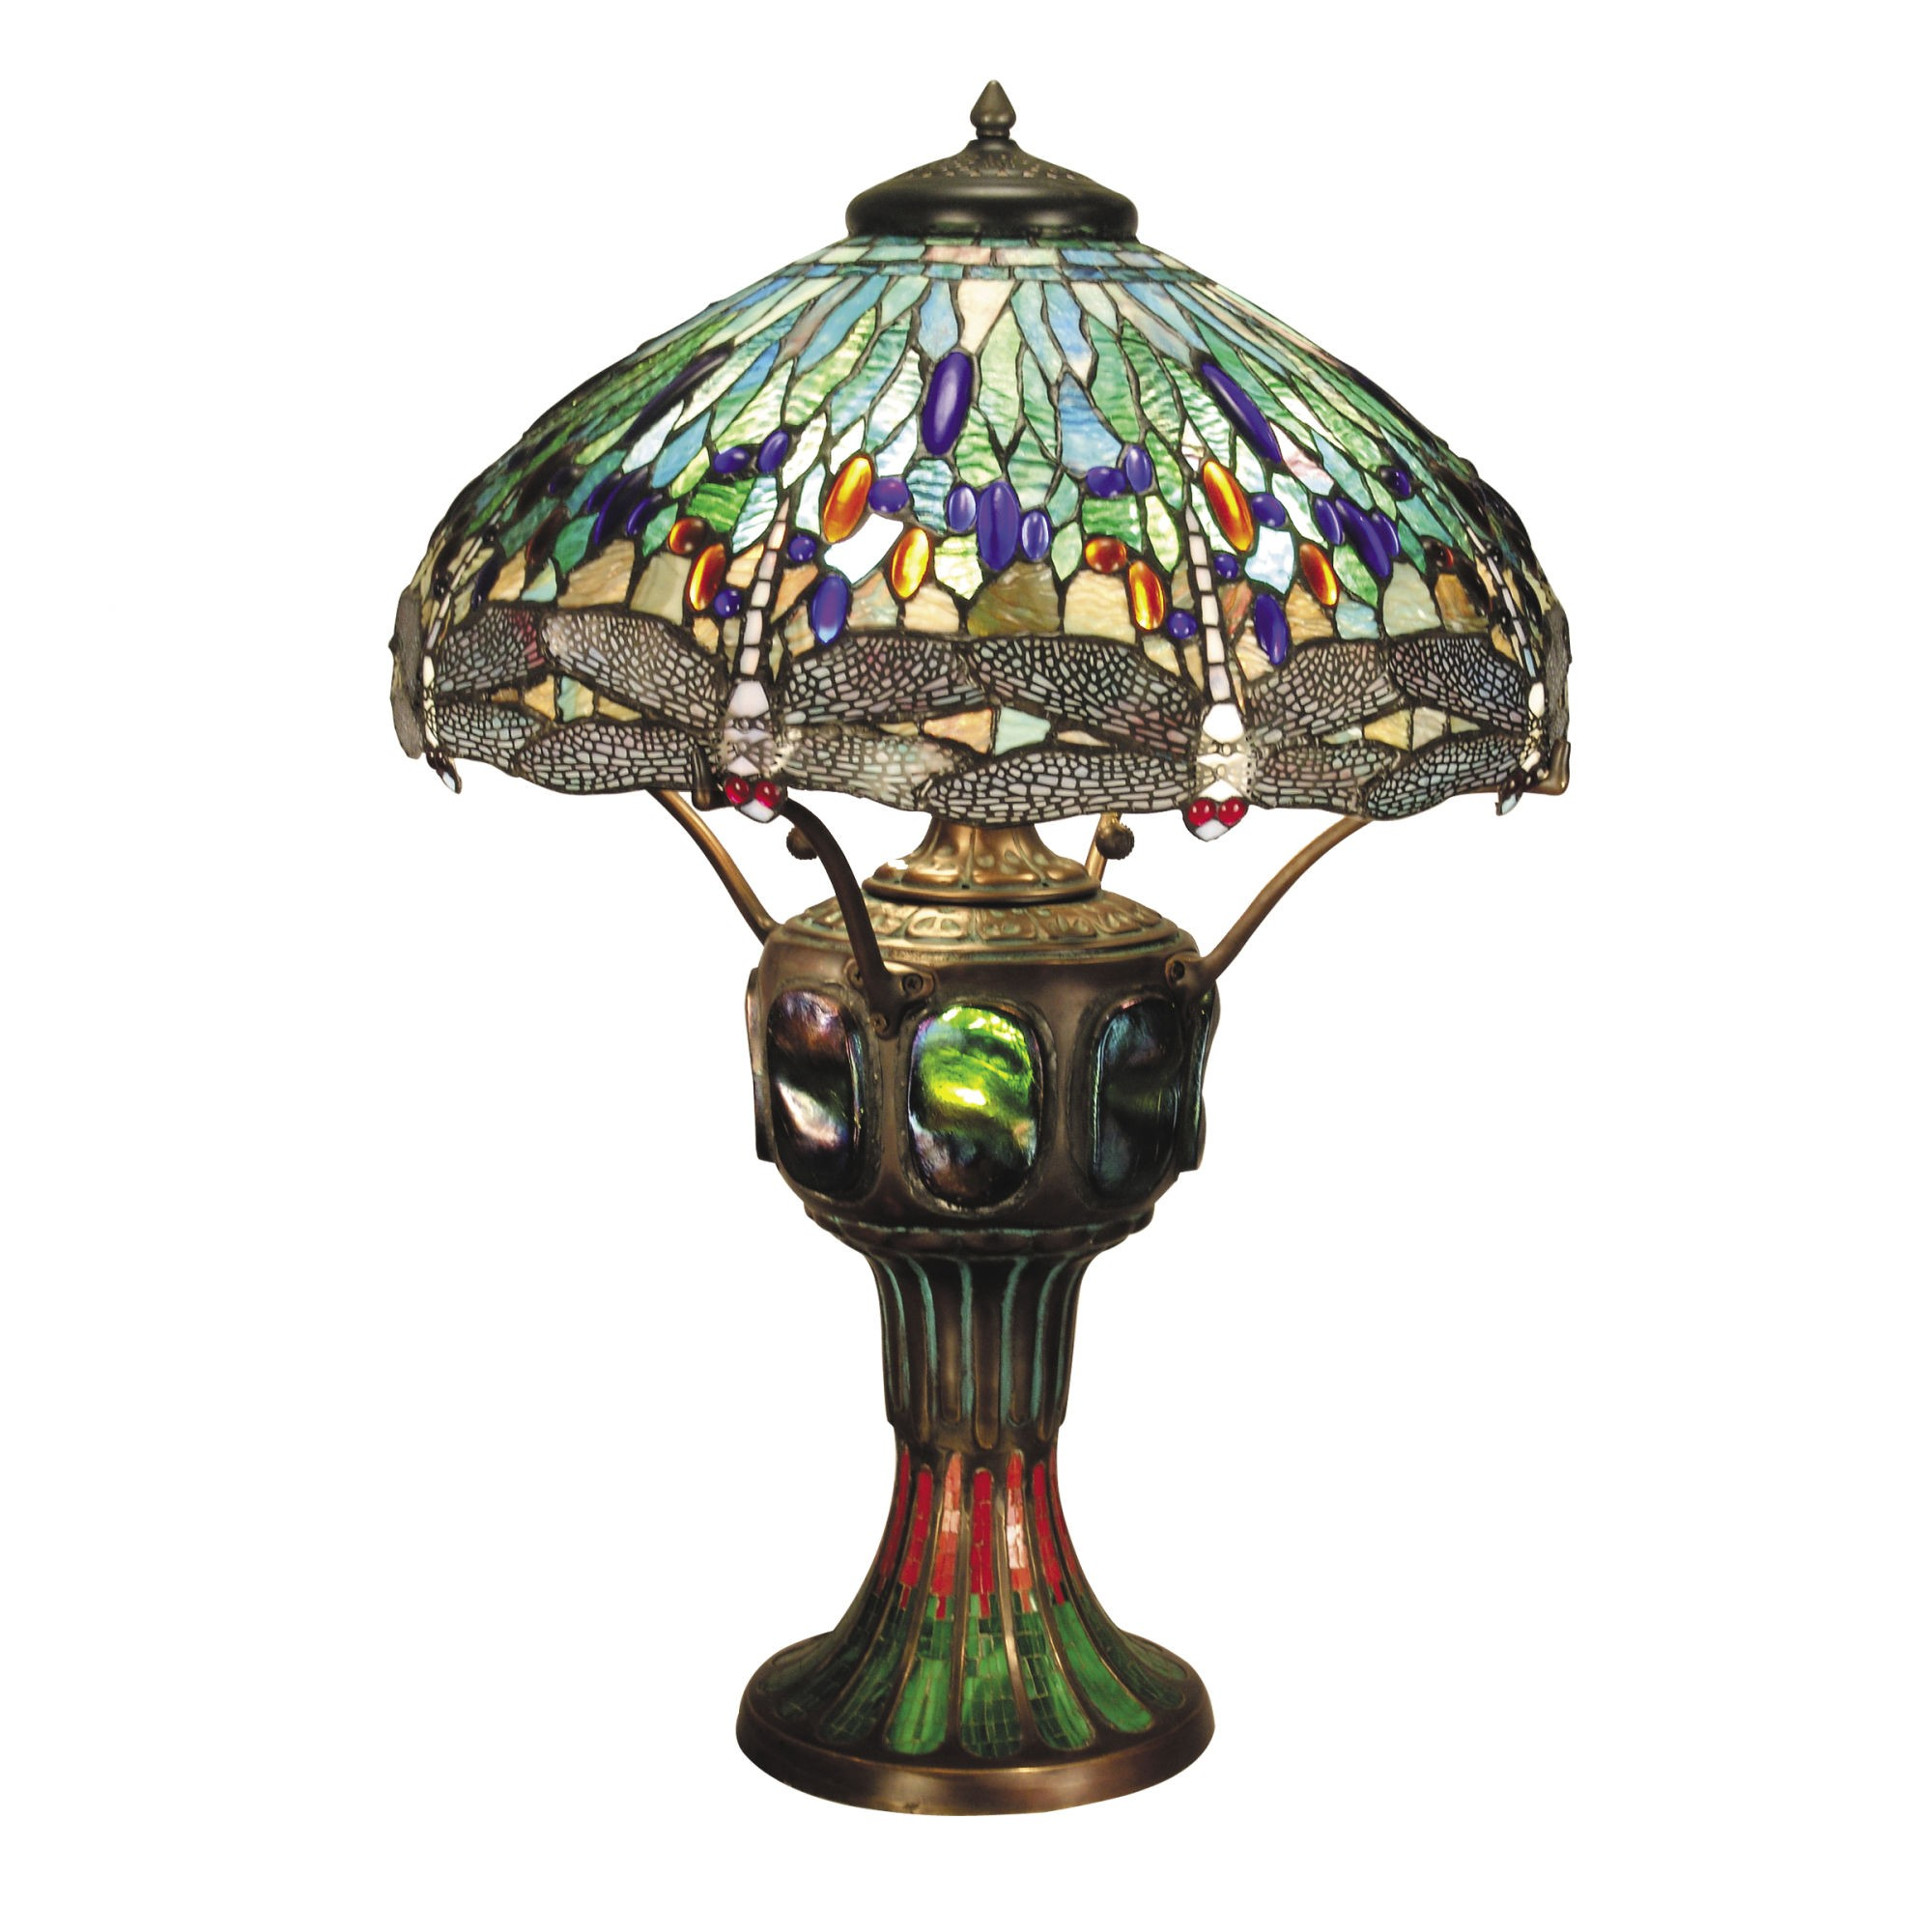 Antique Tiffany Lamps Dale Tiffany Lamps Blue Dragonfly Three Light Table Lamp In Antique Tiffany Lamps Art Glass Lamp Tiffany Table Lamps